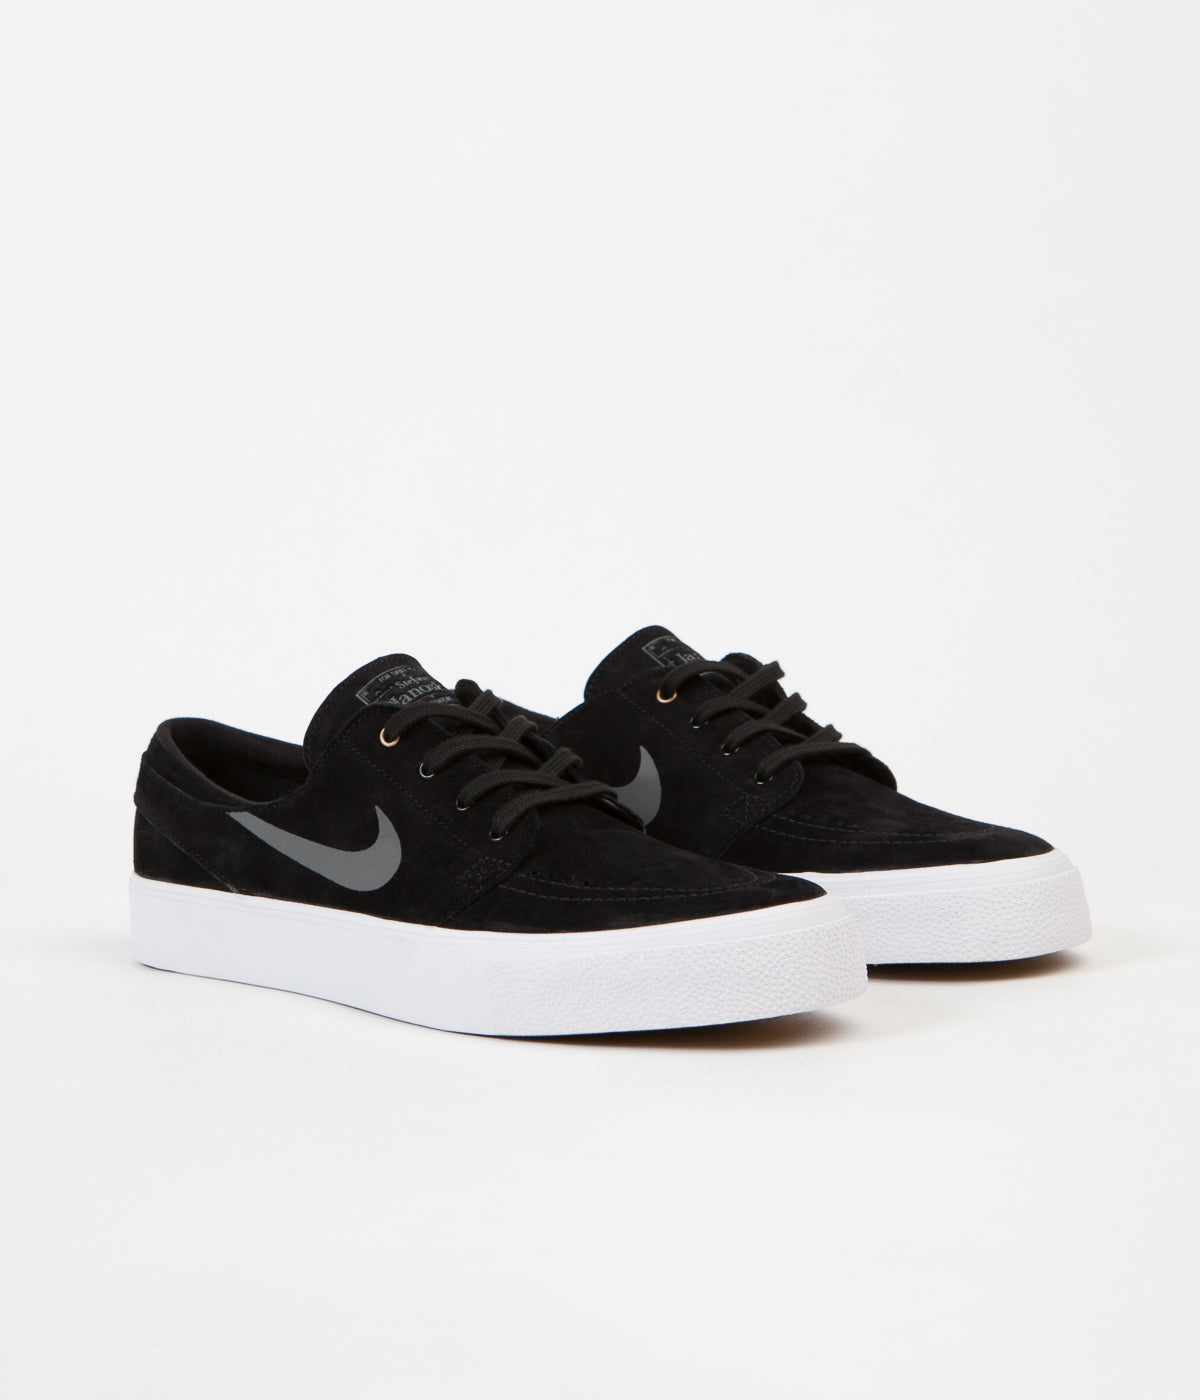 ... Nike SB Stefan Janoski HT Shoes - Black   Dark Grey - Metallic Gold -  White ... 71939e0ba